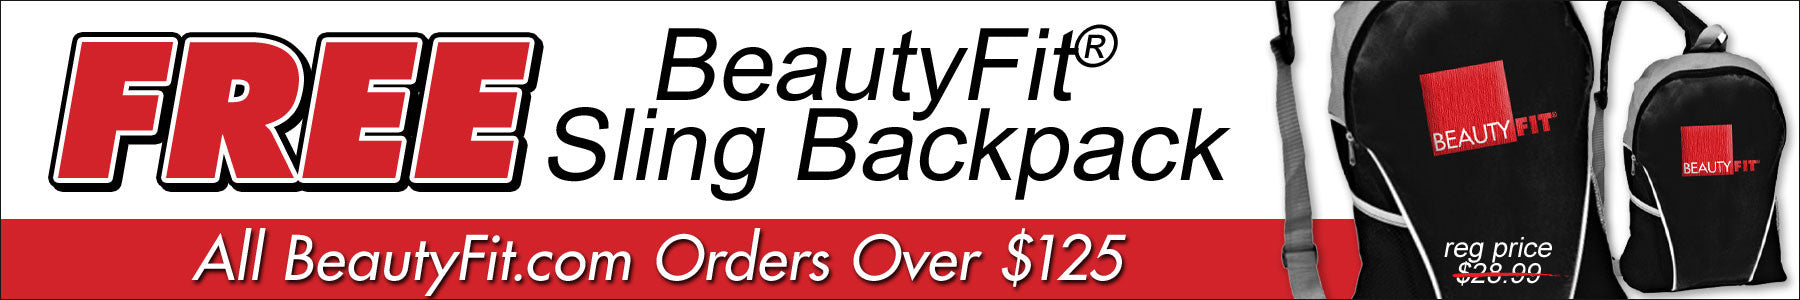 Free Sling Backpack With Orders Over $125